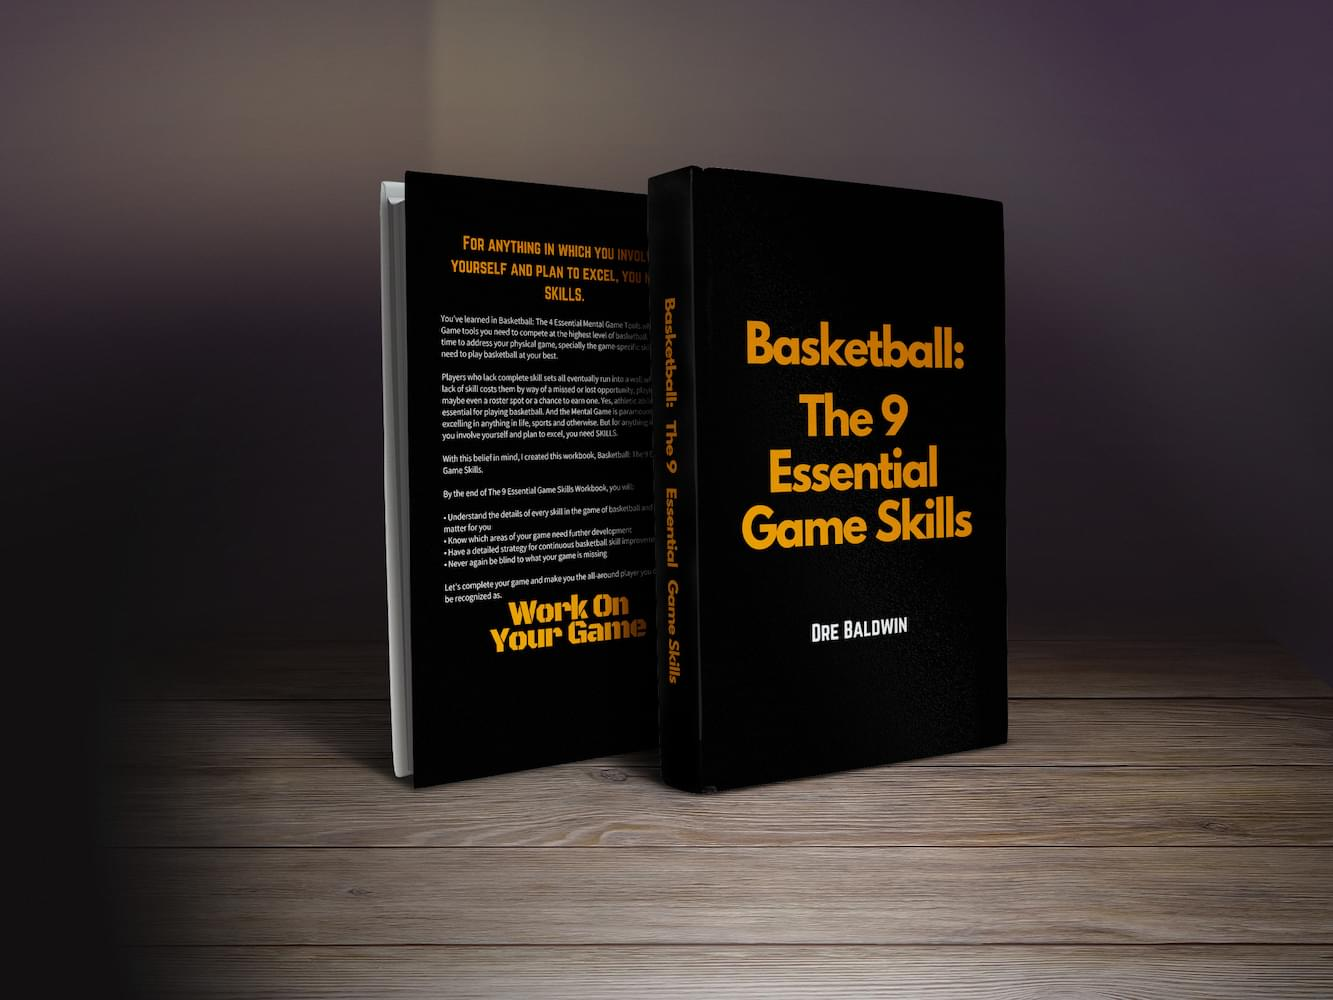 basketball the 9 essential game skills